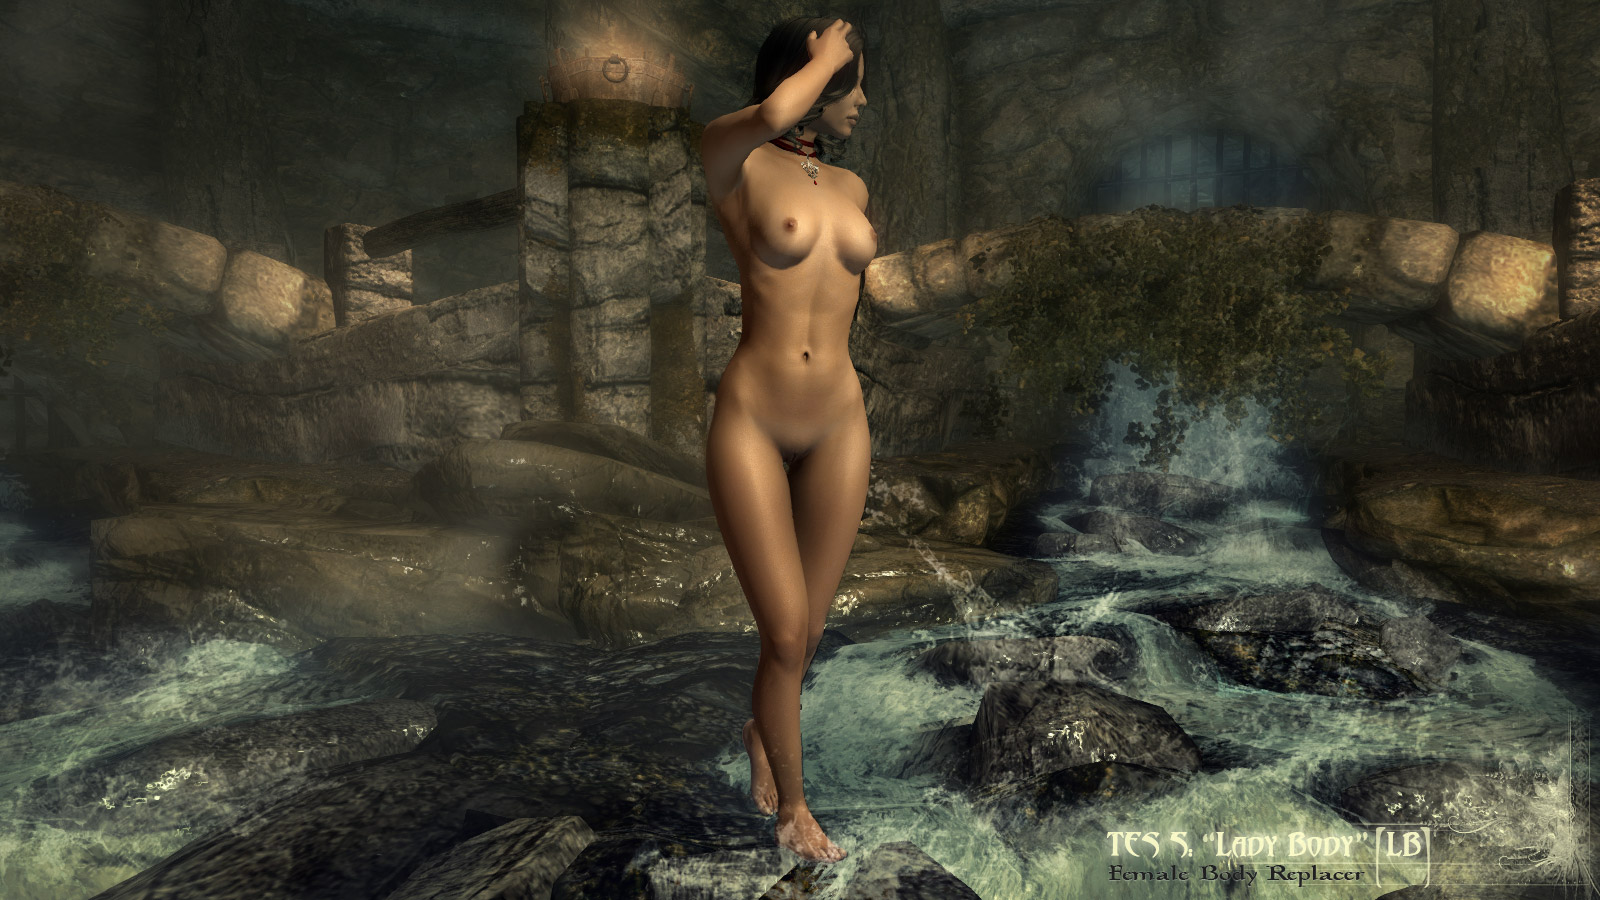 Femal nude skyrim cartoon sensual girl